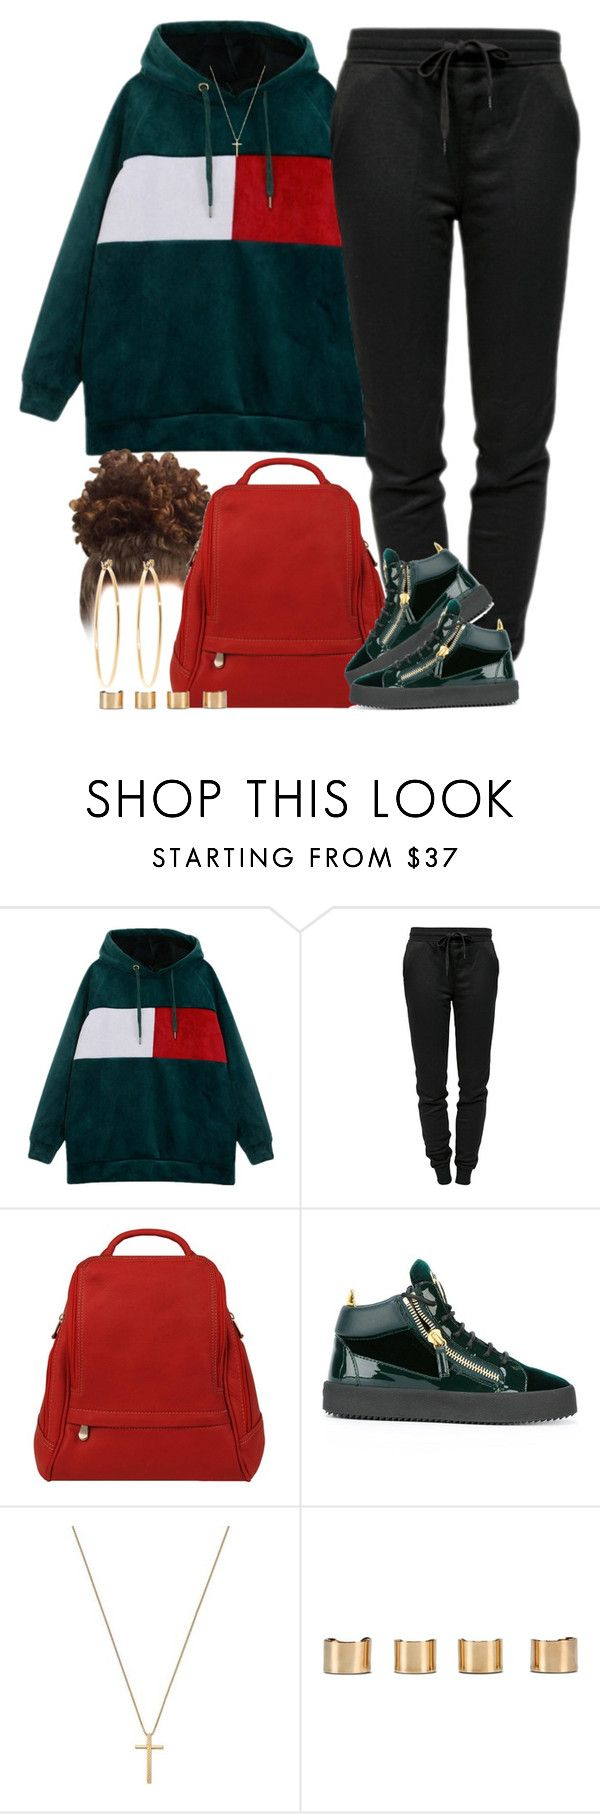 """👩🏽‍🏫"" by livelifefreelyy ❤ liked on Polyvore featuring T By Alexander Wang, Le Donne, Giuseppe Zanotti, Gucci, Maison Margiela and Brooks Brothers"